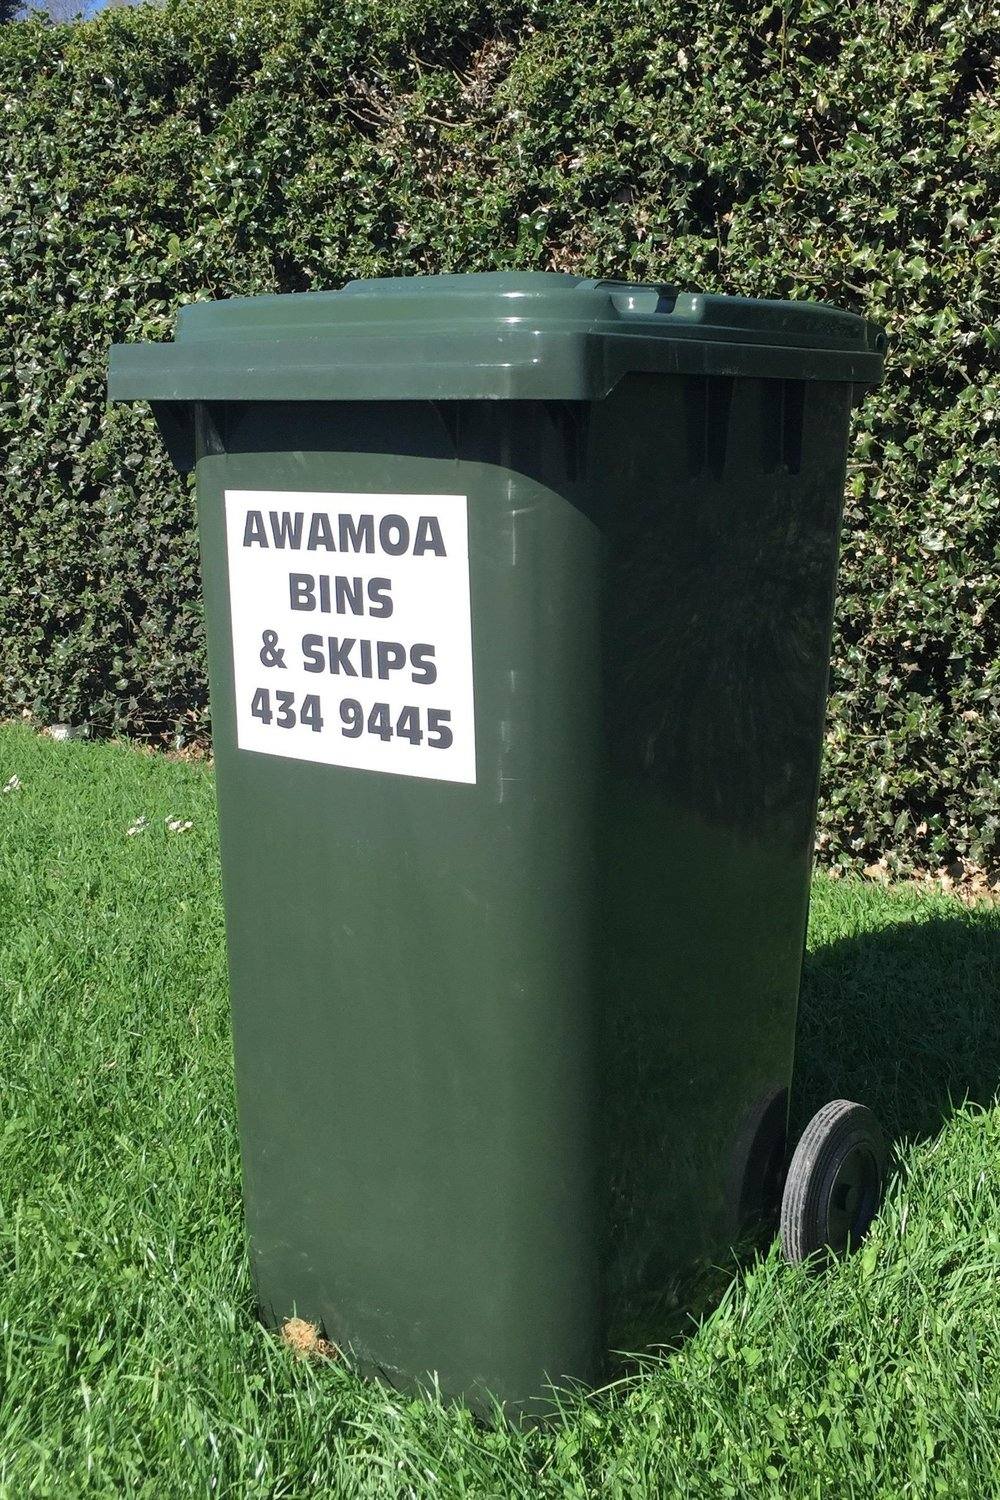 GENERAL WASTE - Large Wheelie (240 litre) or Small Wheelie (120 litre)For all types of household waste, except hot ash.Collection frequency to suit the individual.Some rural areas are visited fortnightly only.Please ensure you call us before 5pm the day prior to request your collection.